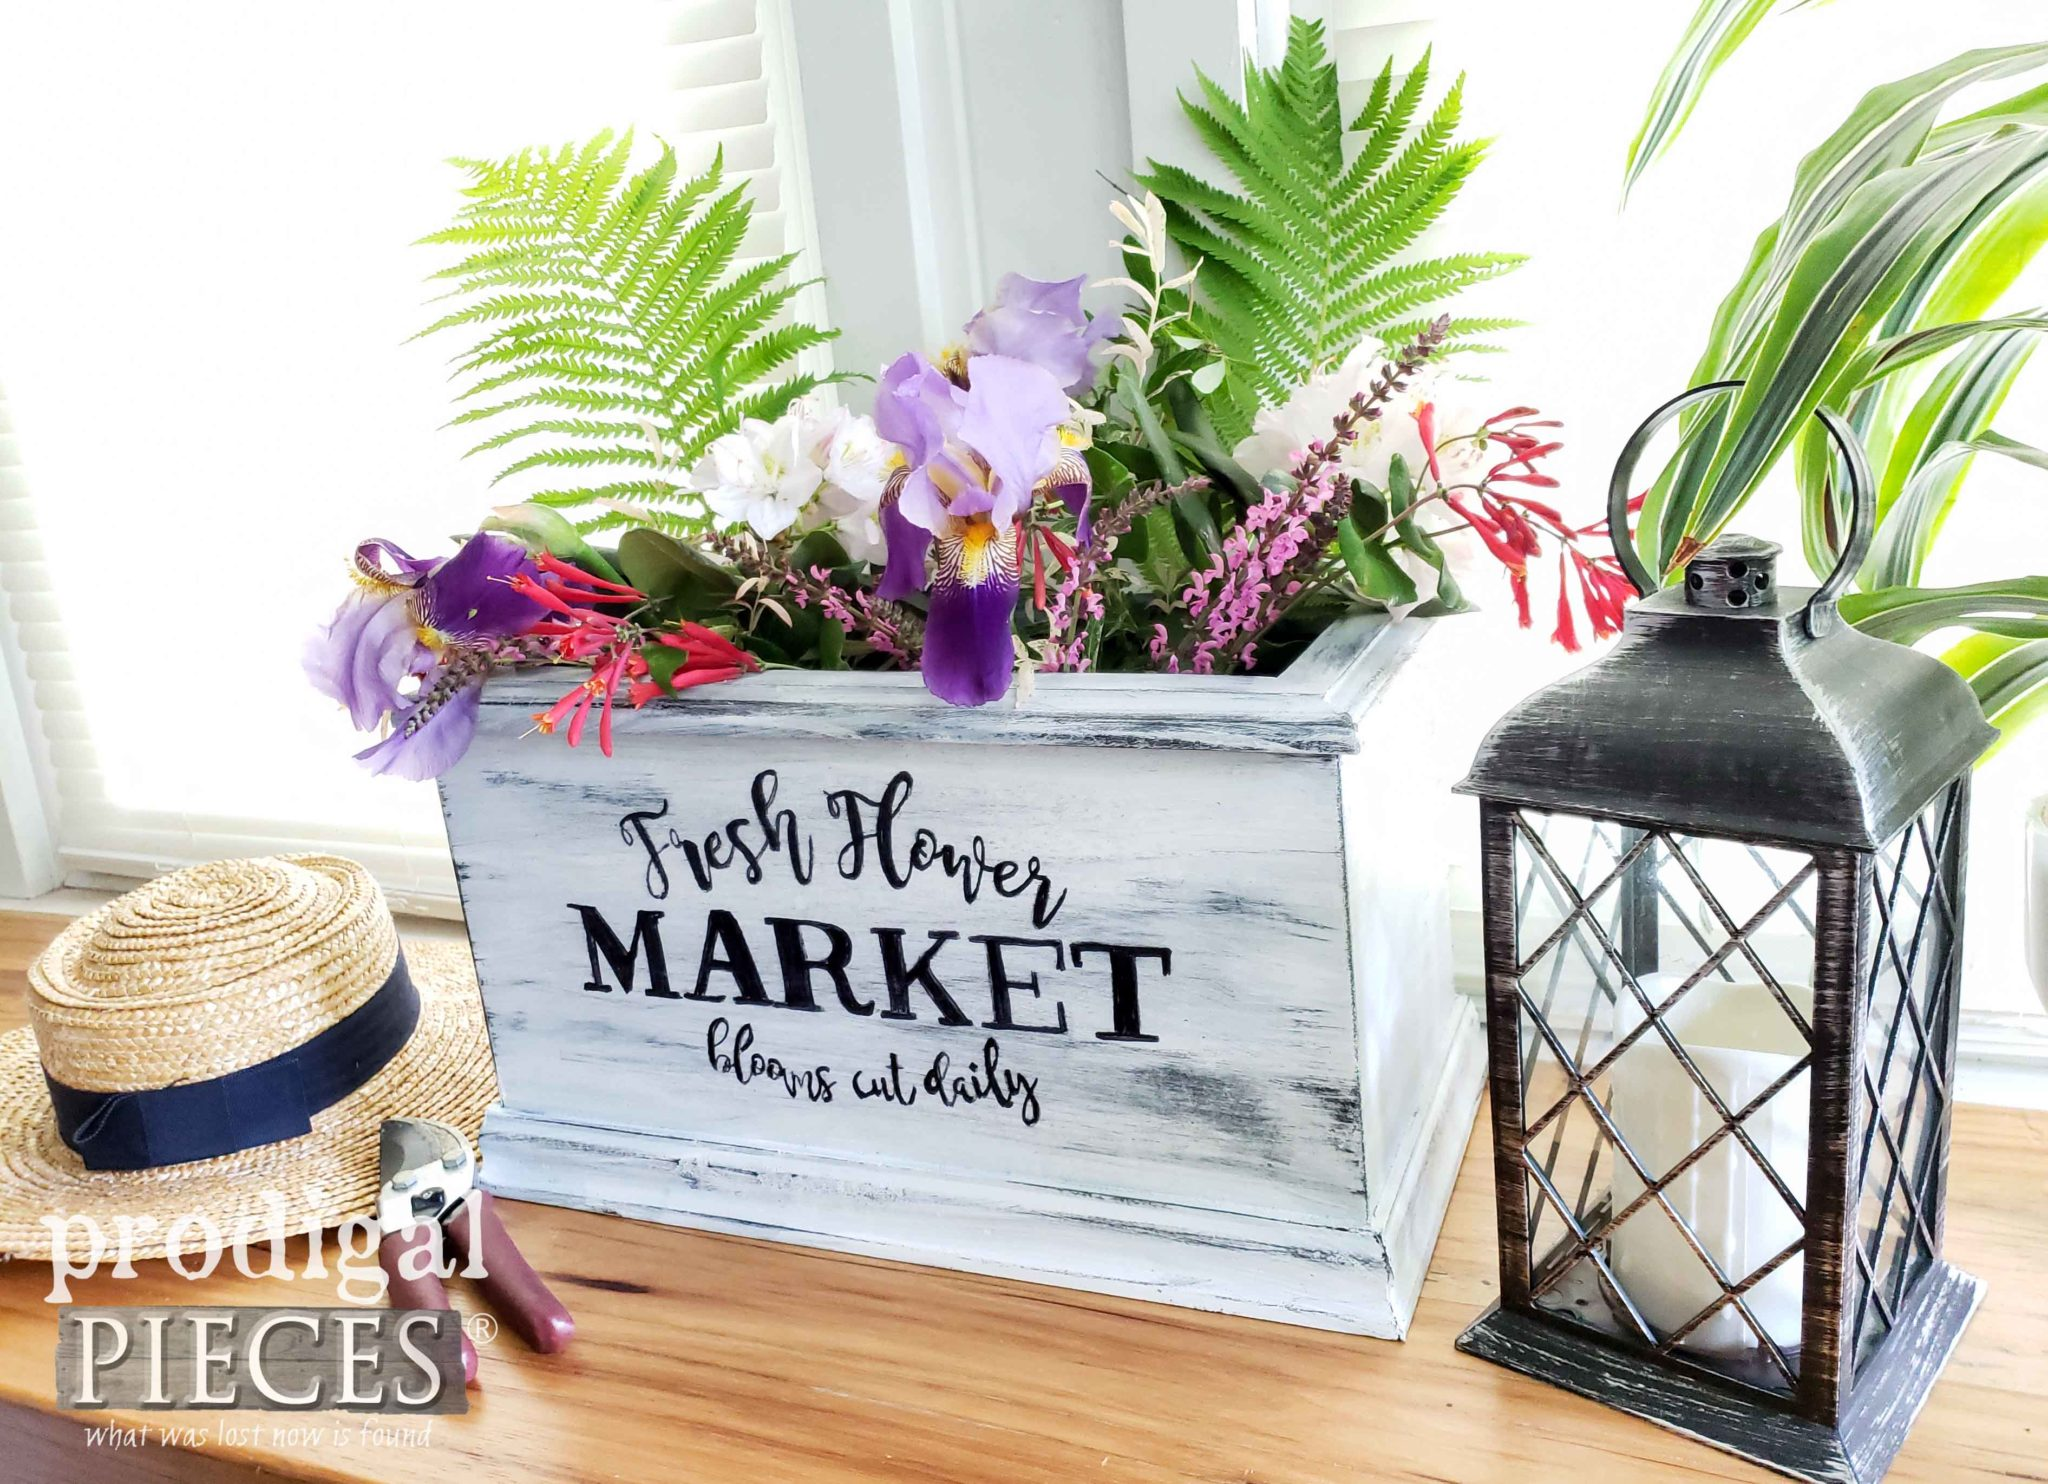 Handmade Fresh Flower Planter from an Upcycled Footboard by Larissa of Prodigal Pieces | prodigalpieces.com #prodigalpieces #diy #handmade #farmhouse #home #garden #flower #homedecor